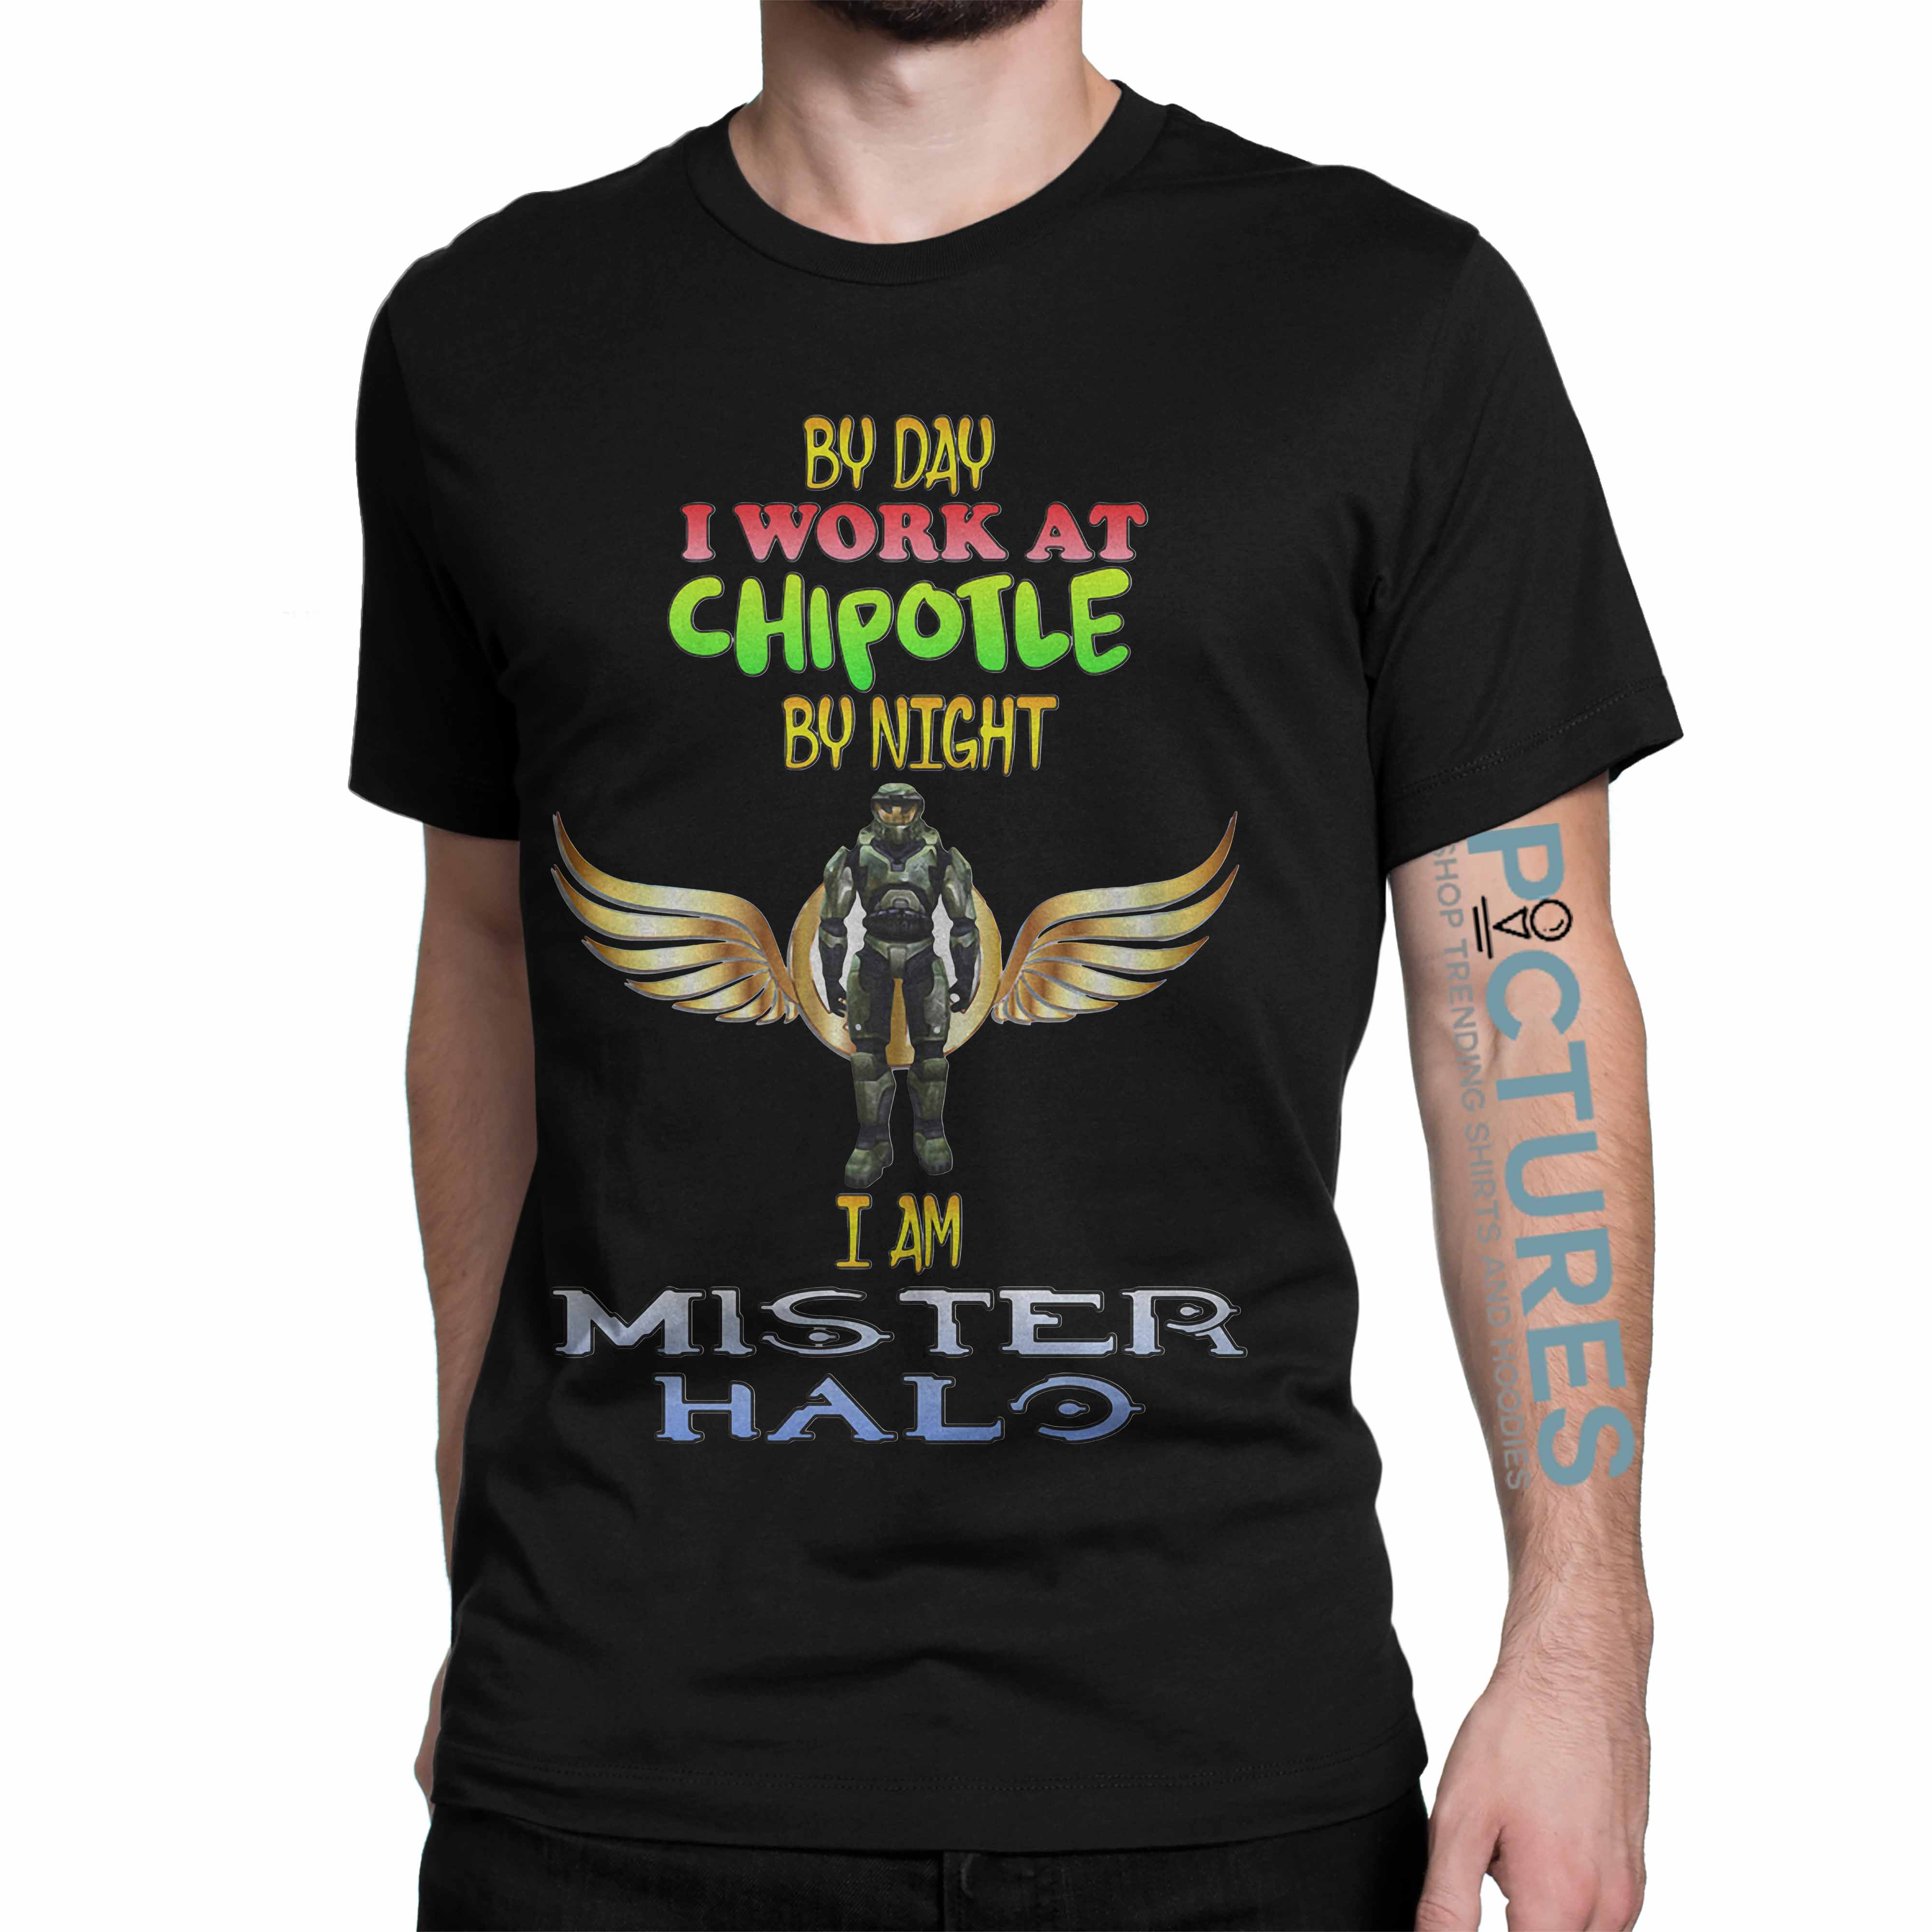 By day I work at Chipotle by night I am Mister Halo shirt